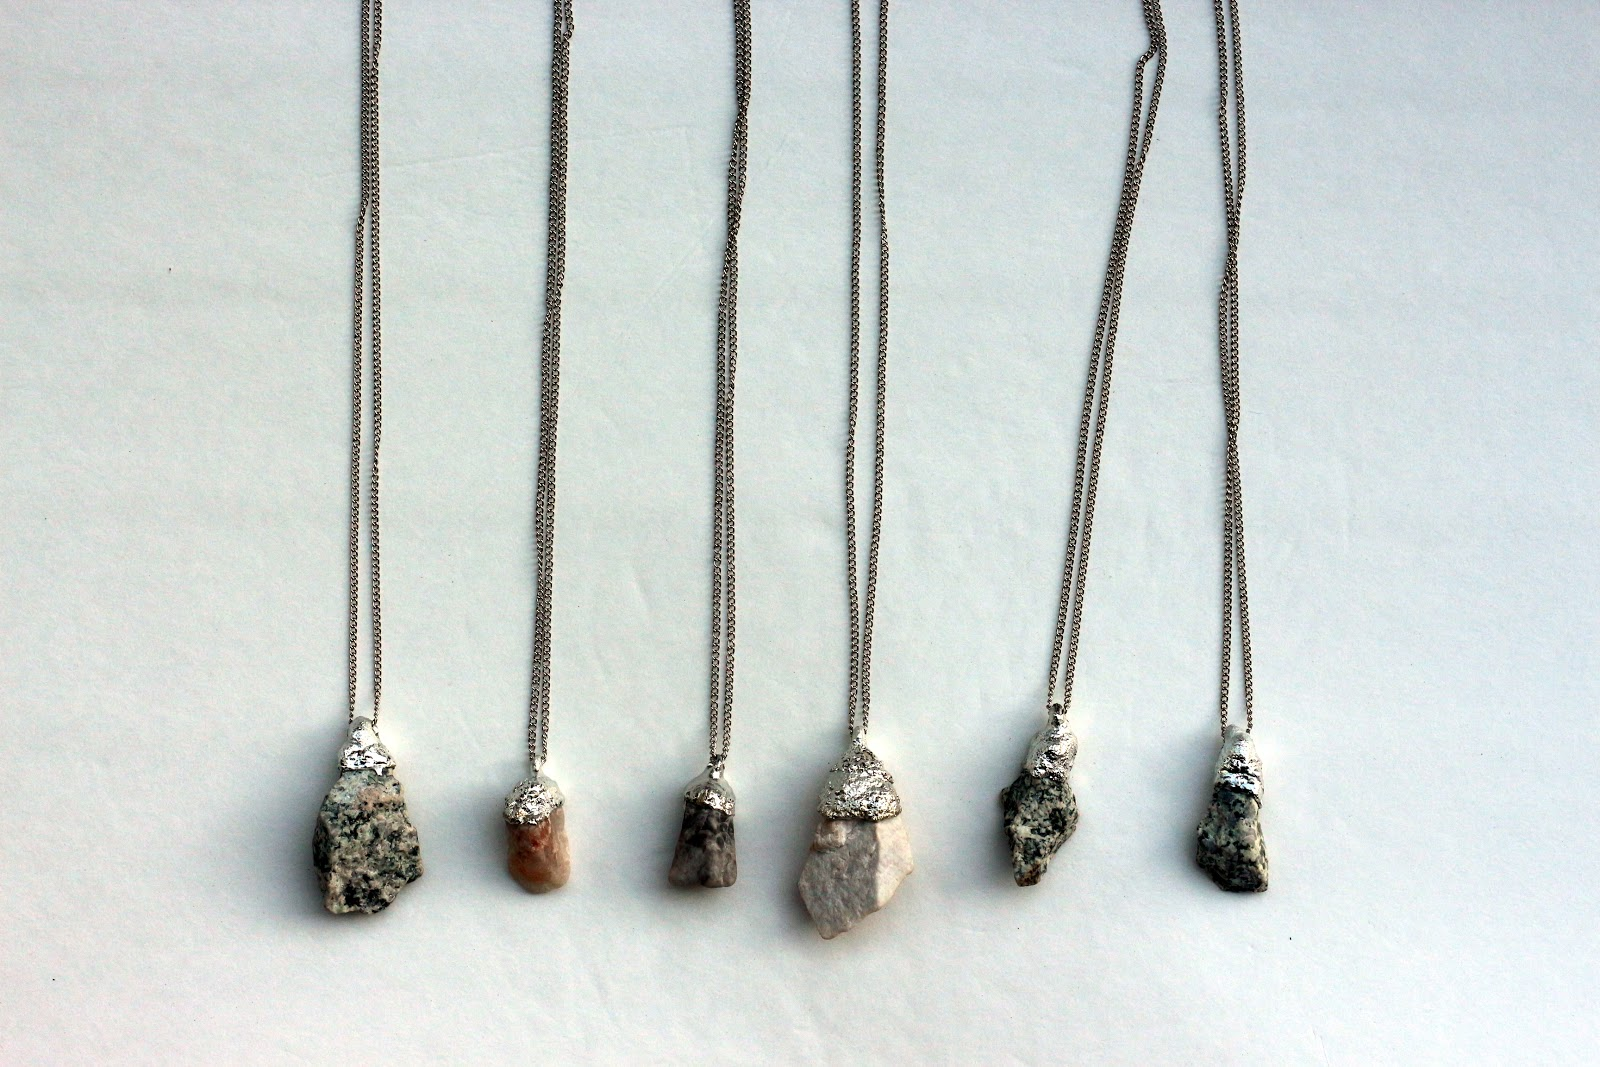 Bromeliad: My DIY raw stone pendants - Fashion and home ...